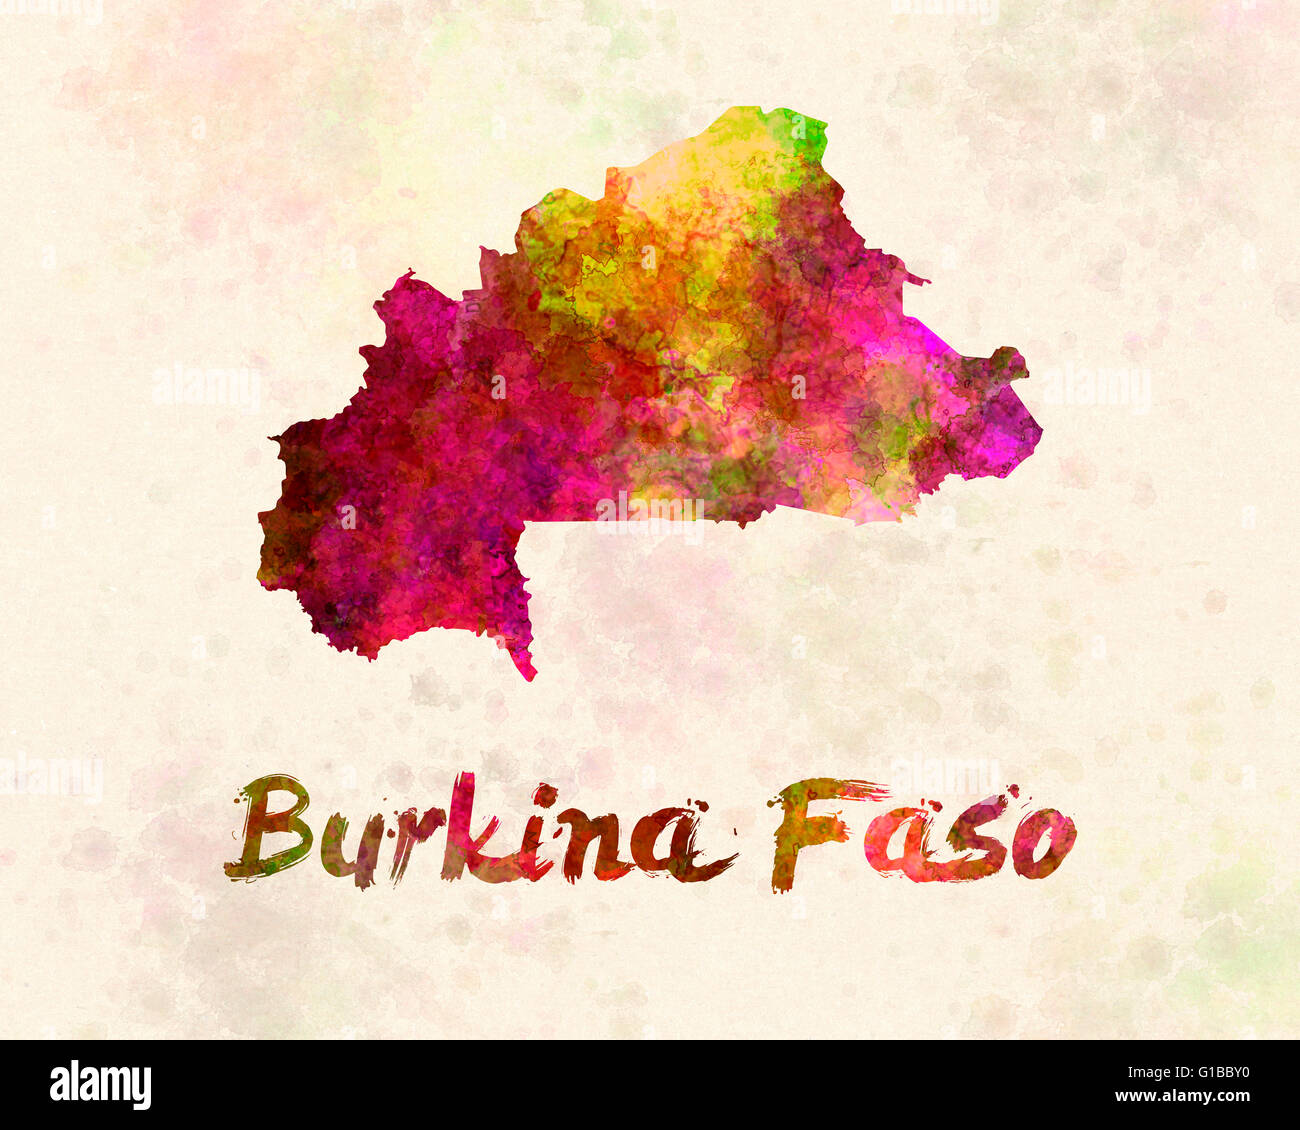 Burkina in watercolor - Stock Image